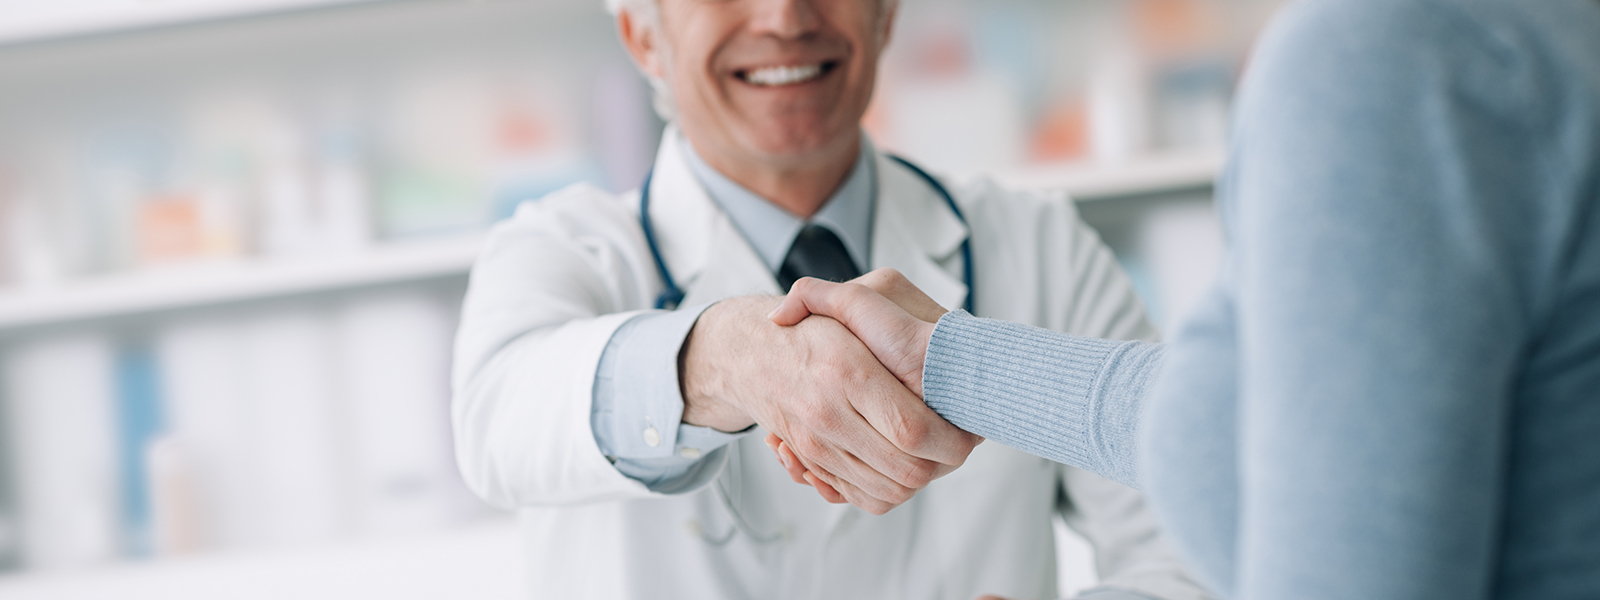 Male veterinarian shaking hands with a woman